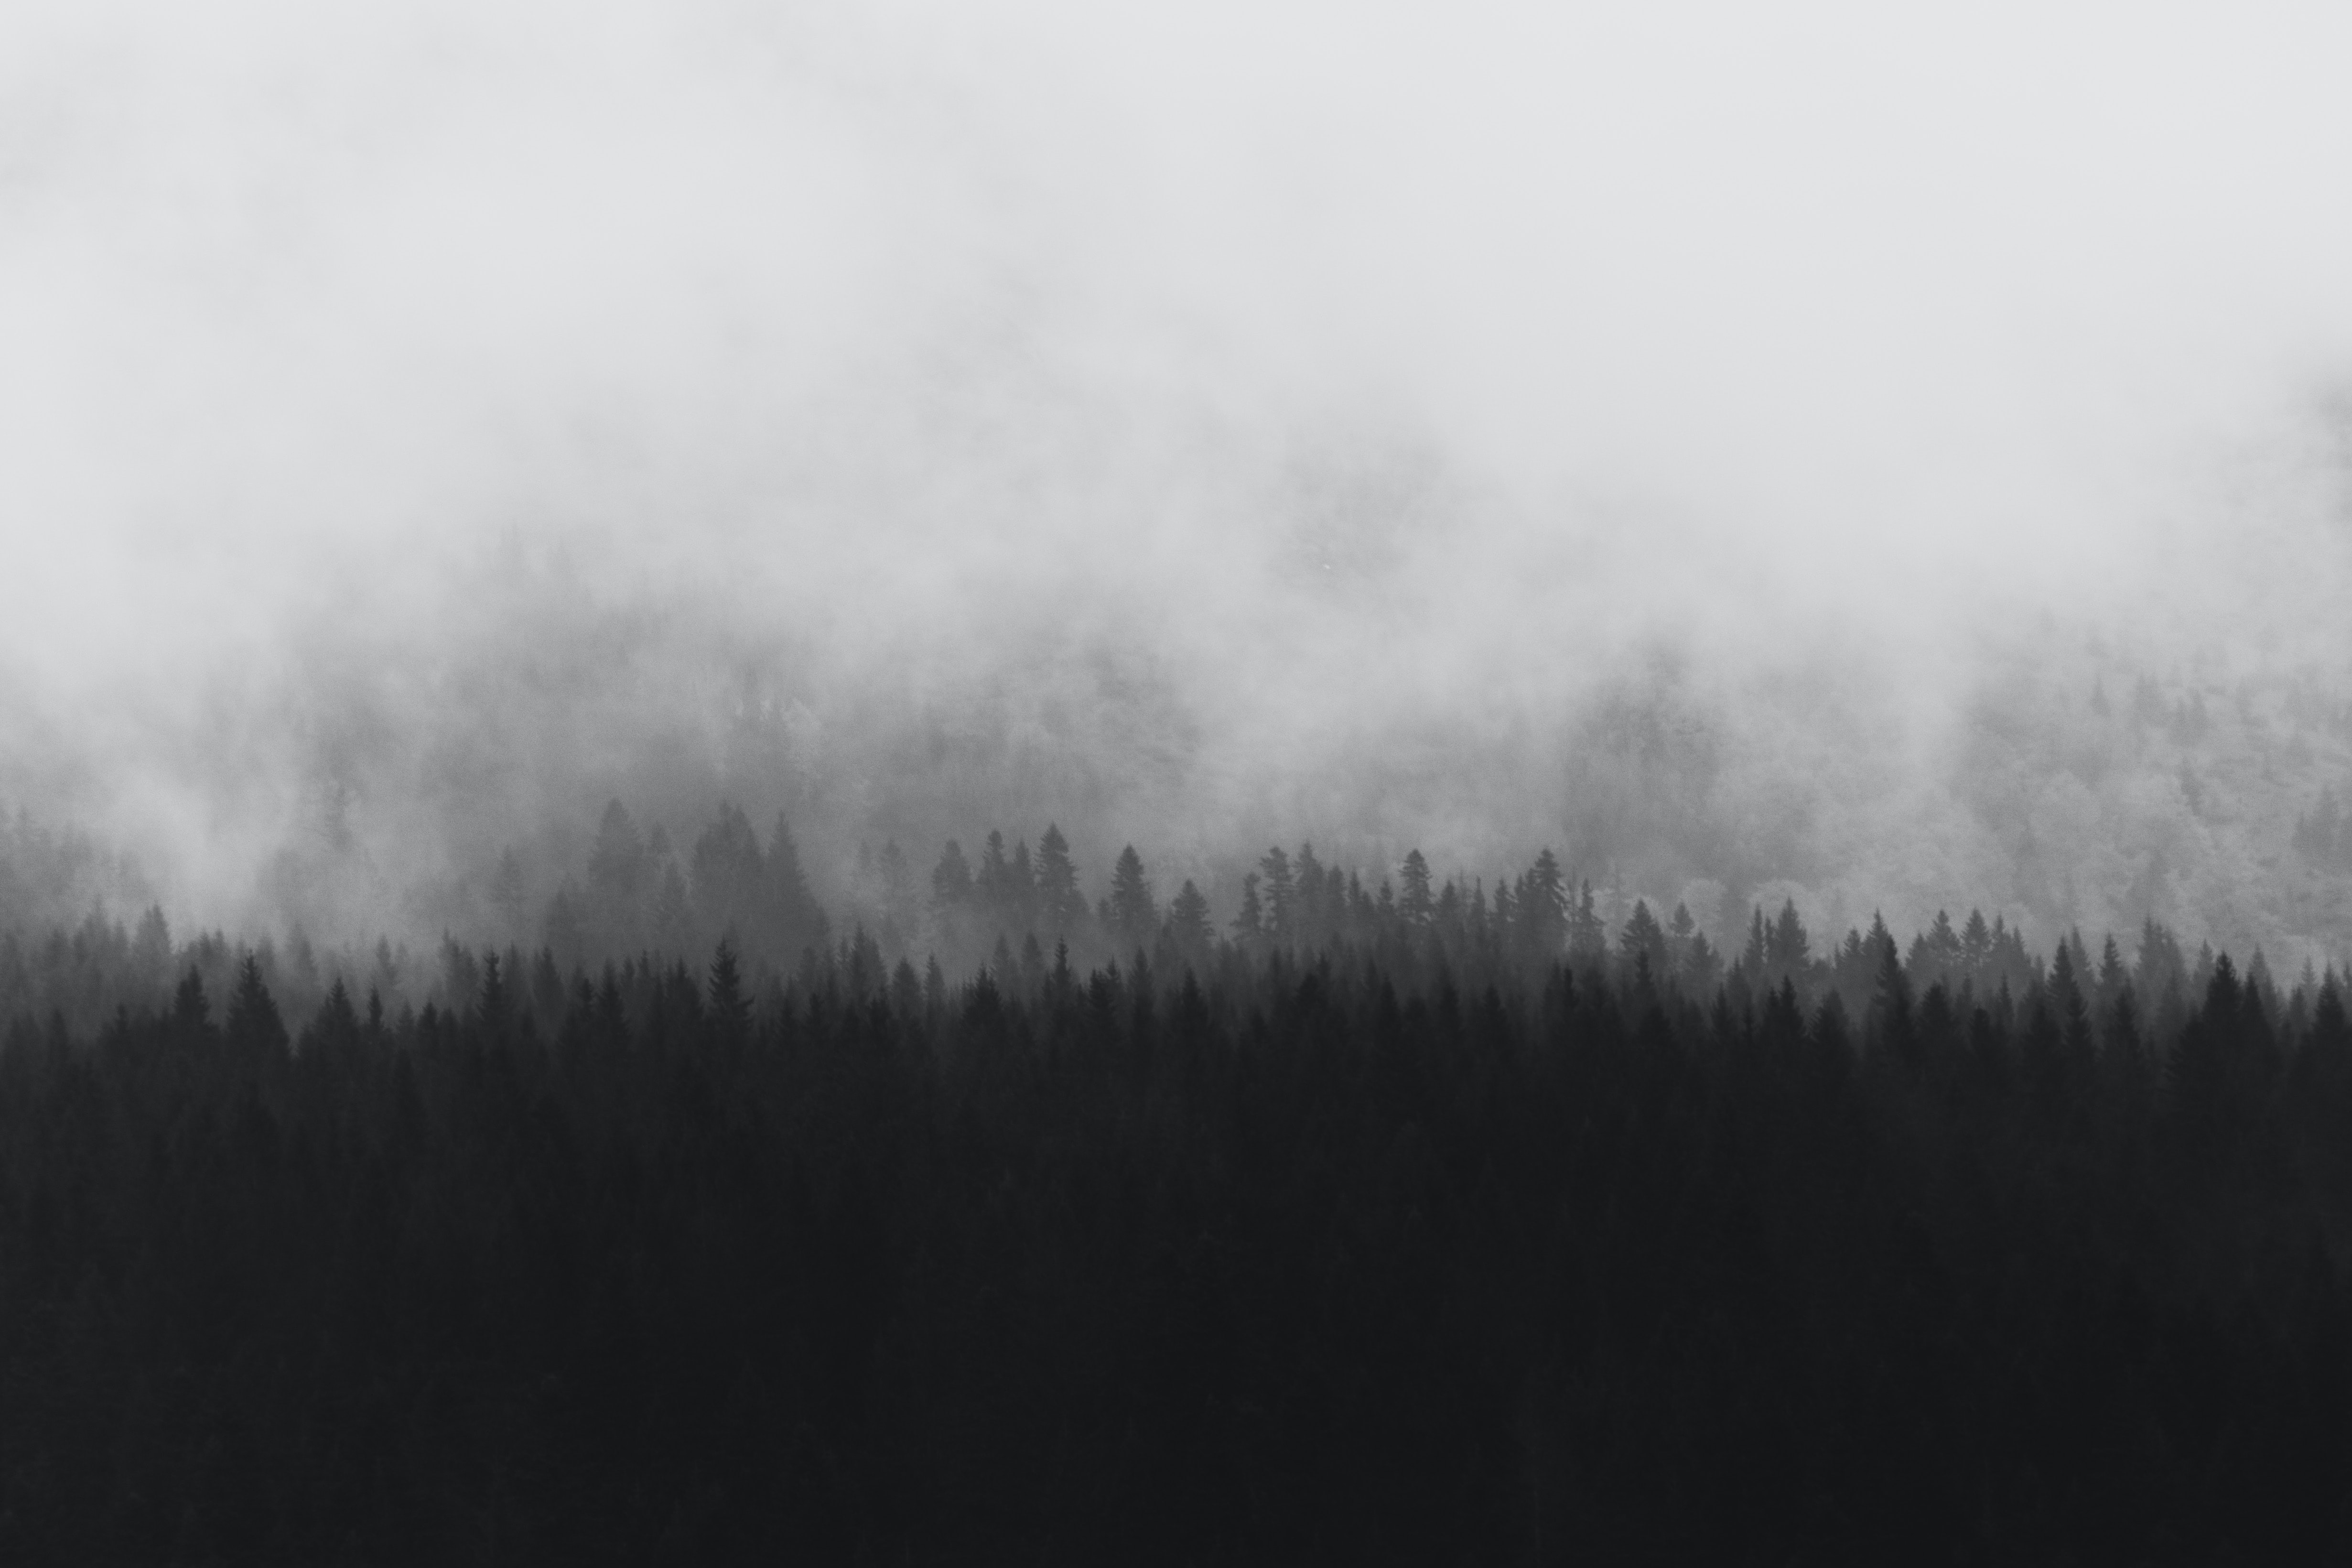 silhouette of trees with fogs